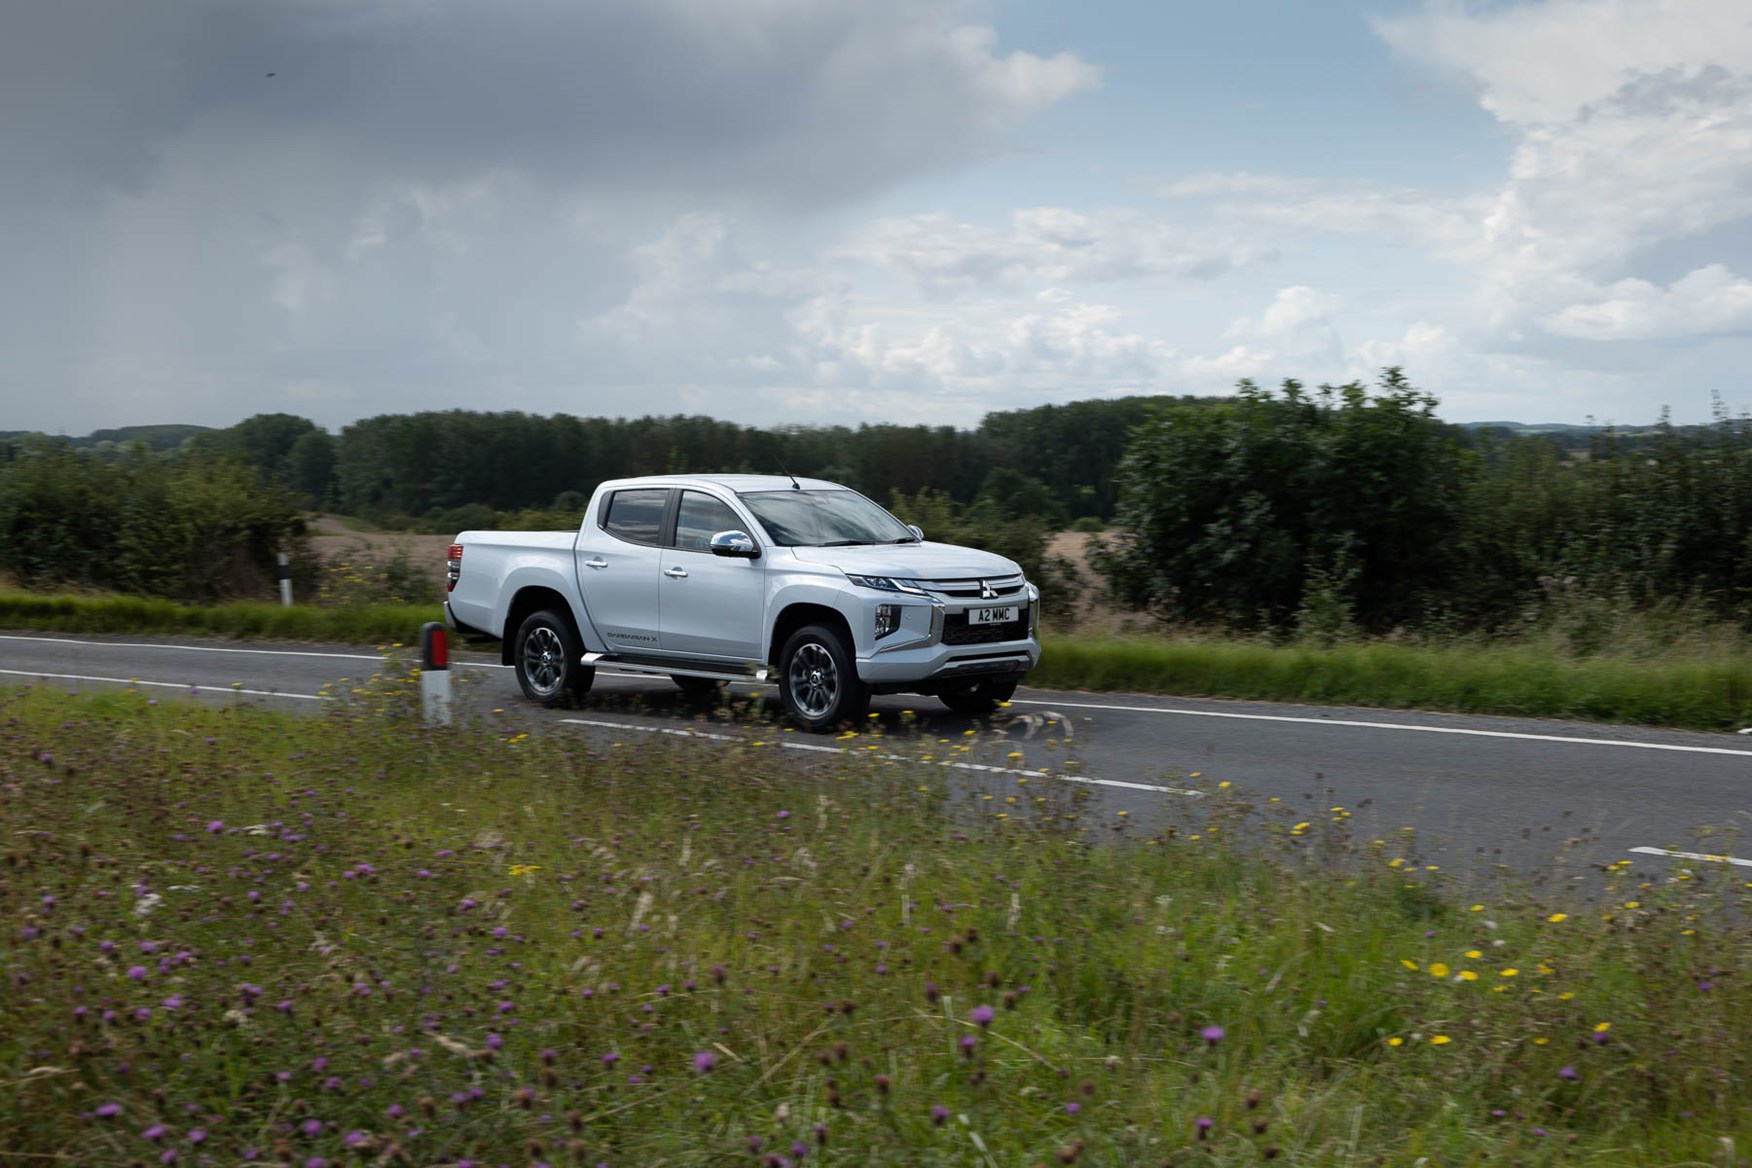 2019 Mitsubishi L200 pickup, driving. Barbarian X in Diamond White